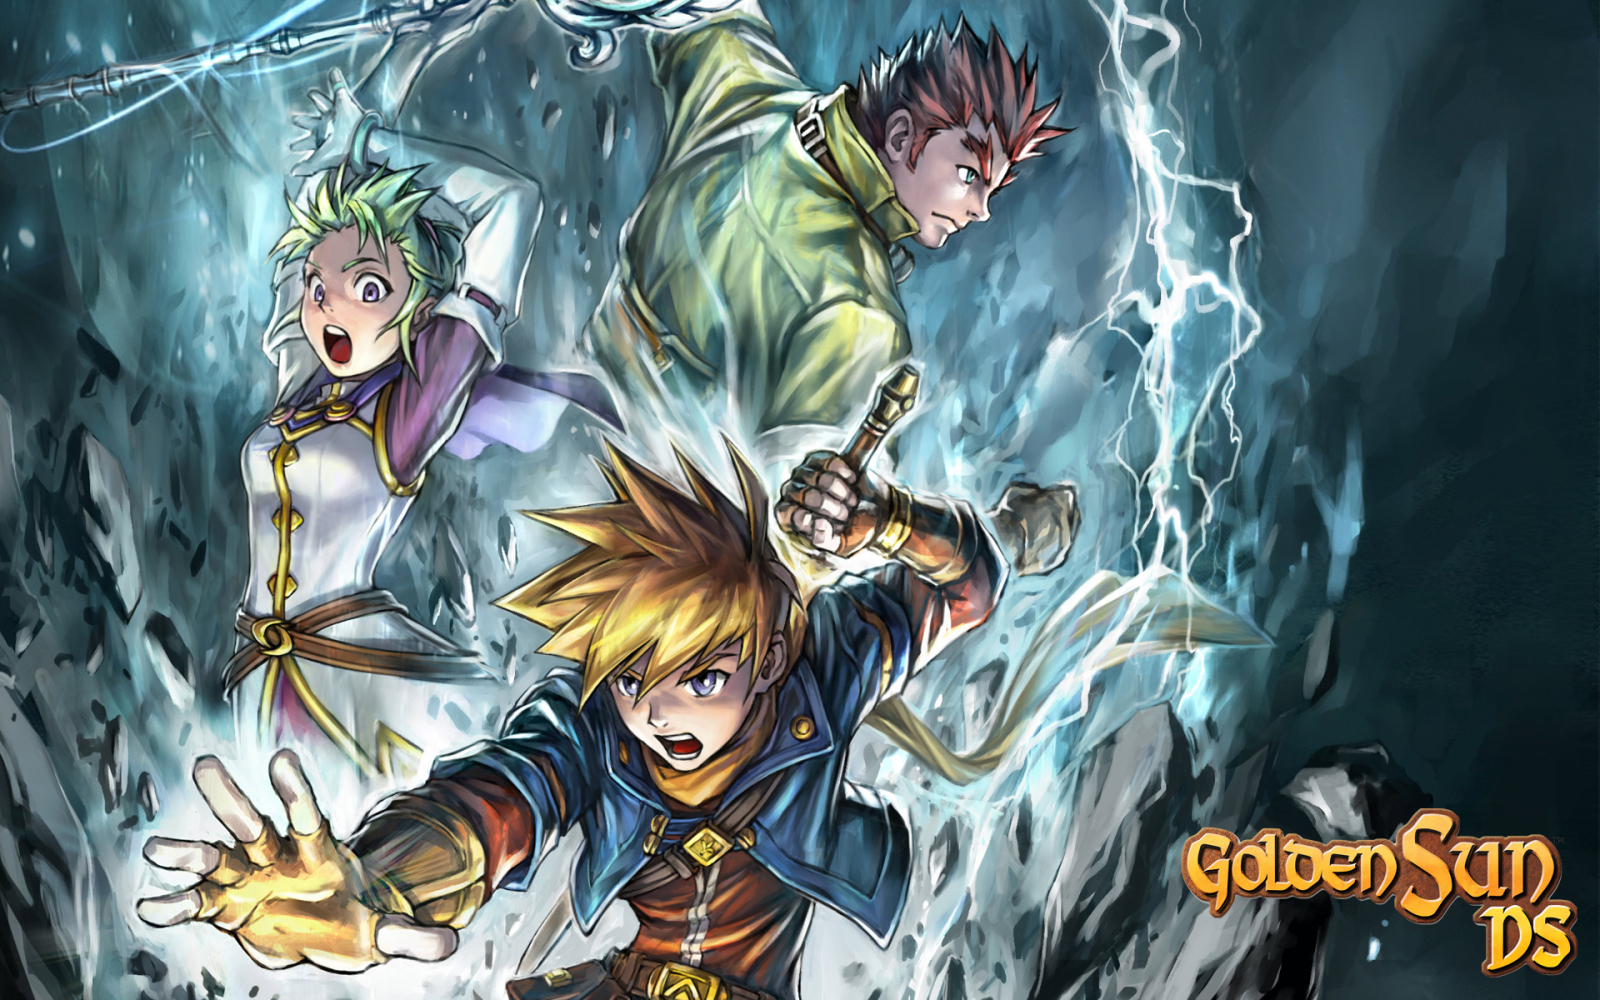 Golden Sun - Wallpapers and Gameplay Screenshots